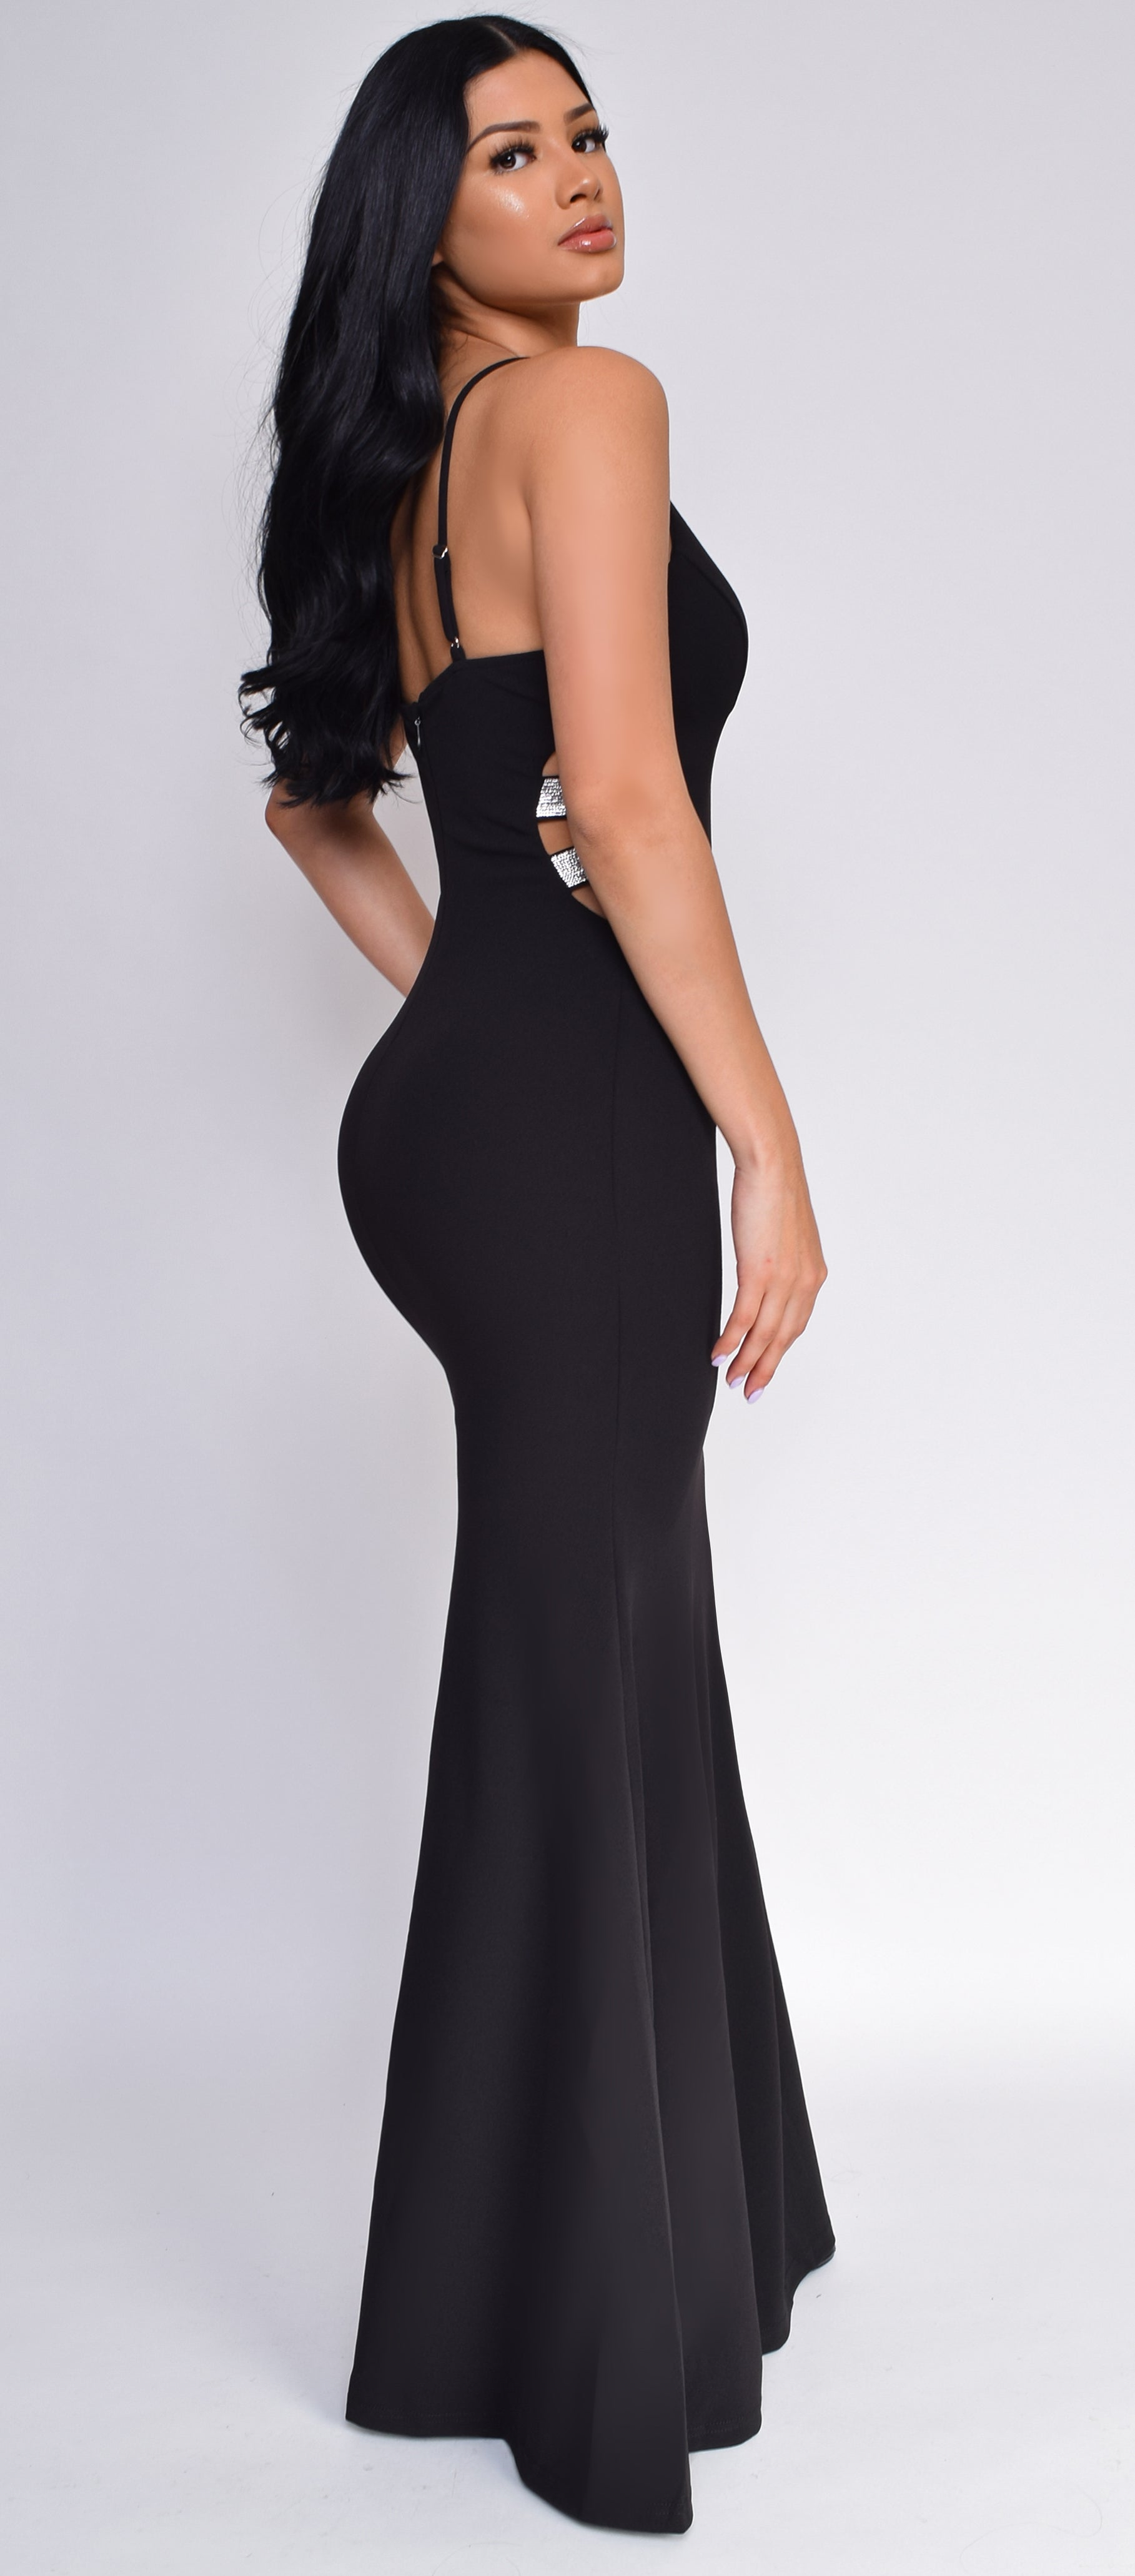 Essence Black Side Rhinestone Cutout Mermaid Gown